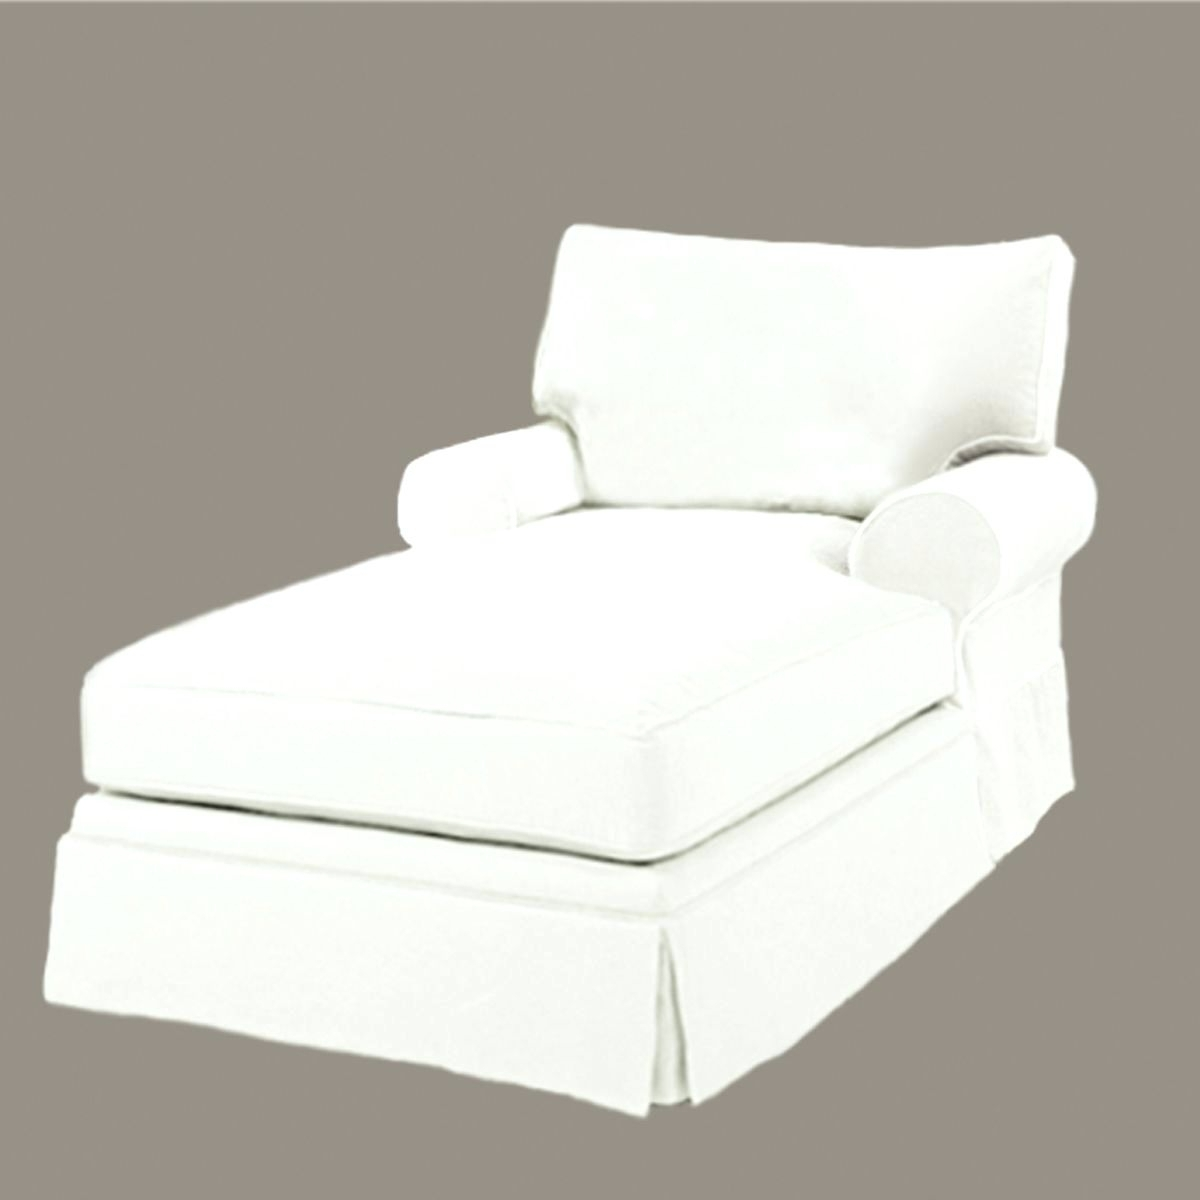 Cover For Indoor Chaise Lounge Chair • Lounge Chairs Ideas In Most Recently Released Covers For Chaise Lounge Chair (View 3 of 15)